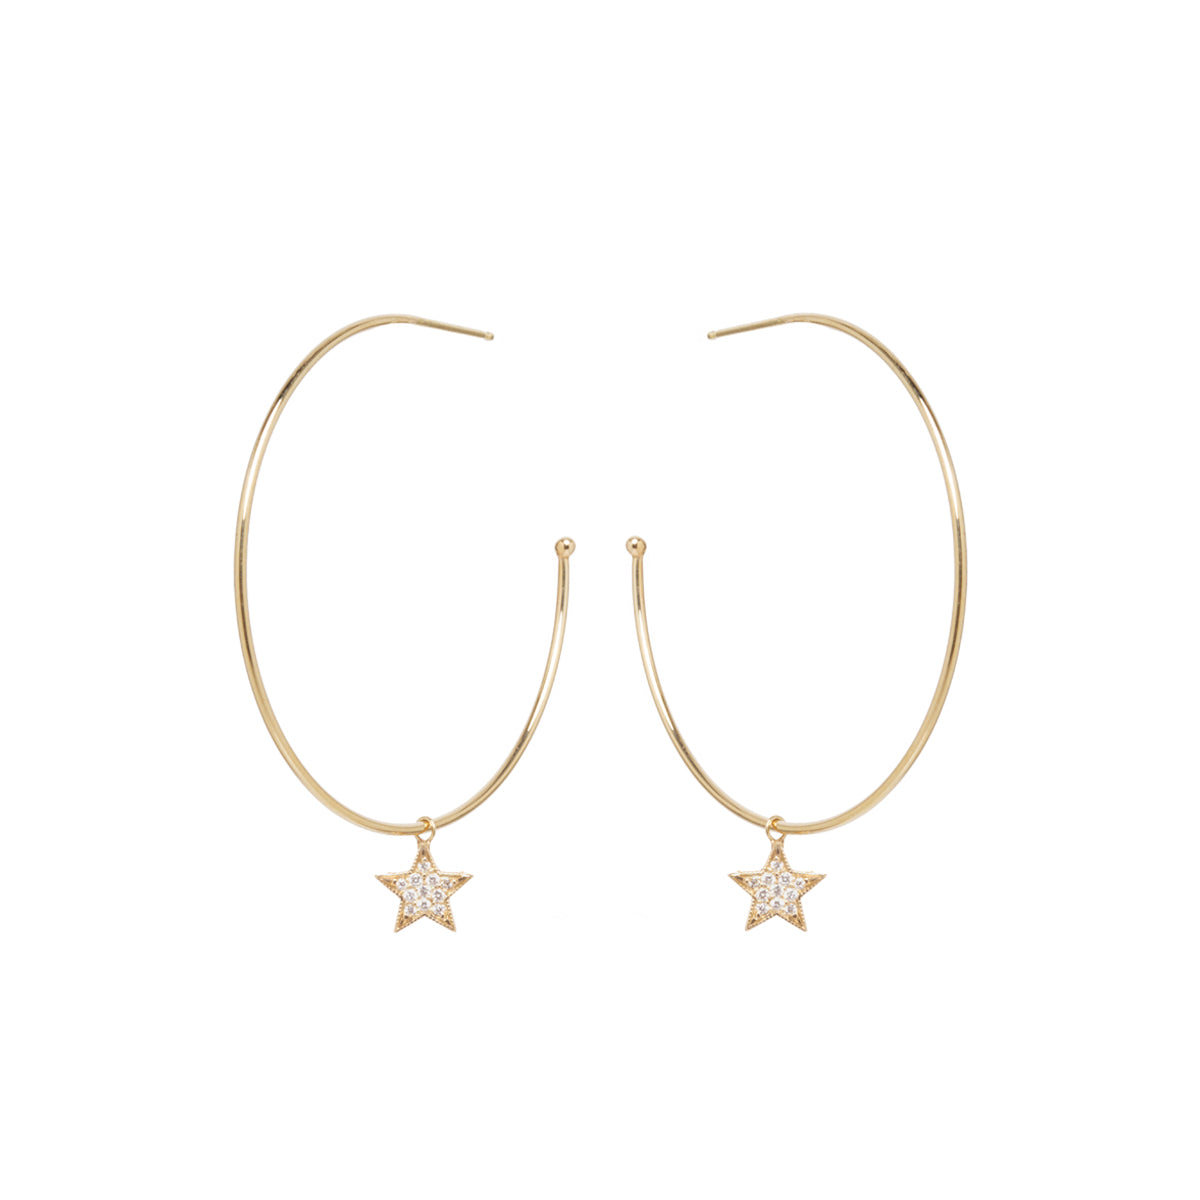 14k large hoops with dangling pave diamond midi bitty star charms